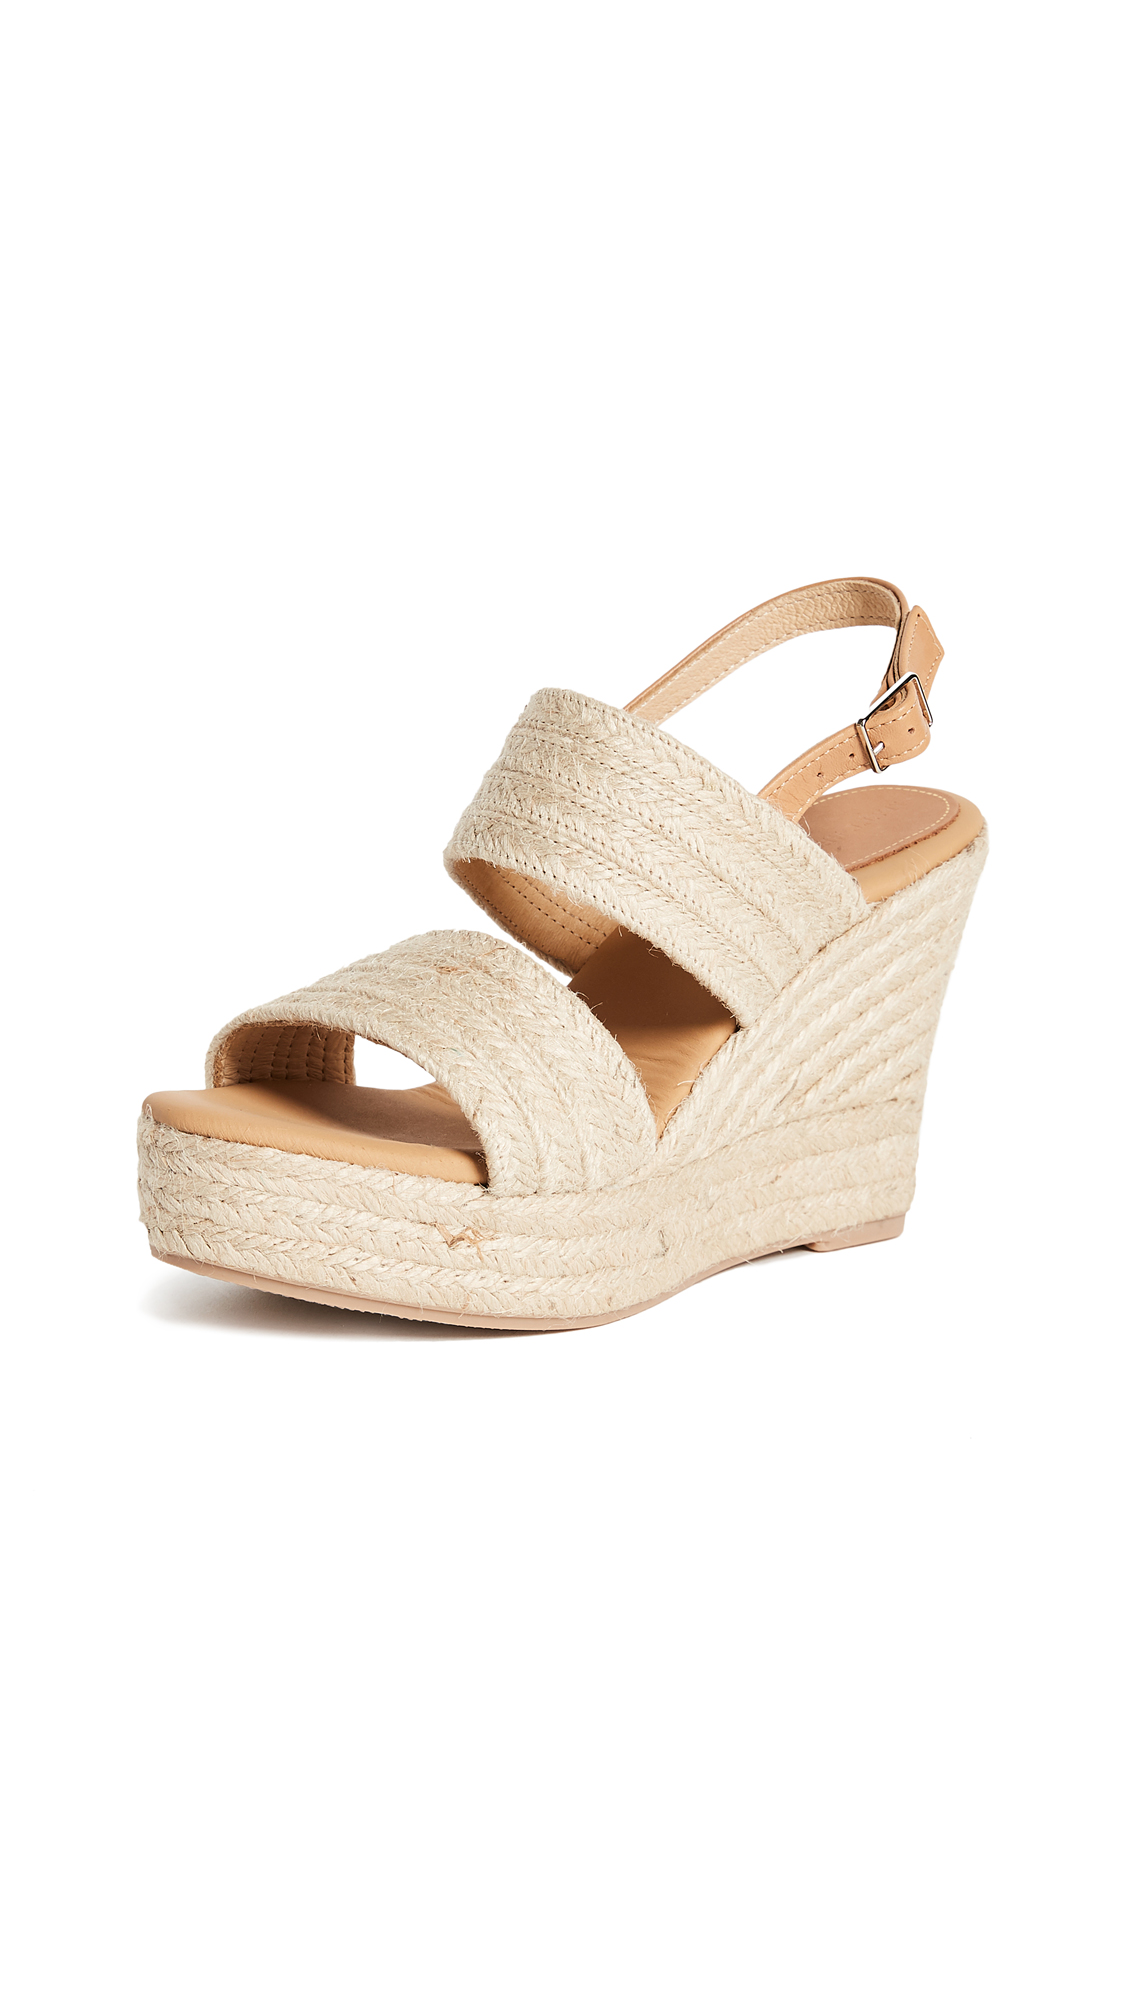 Matt Bernson Marseille Wedges - Jute